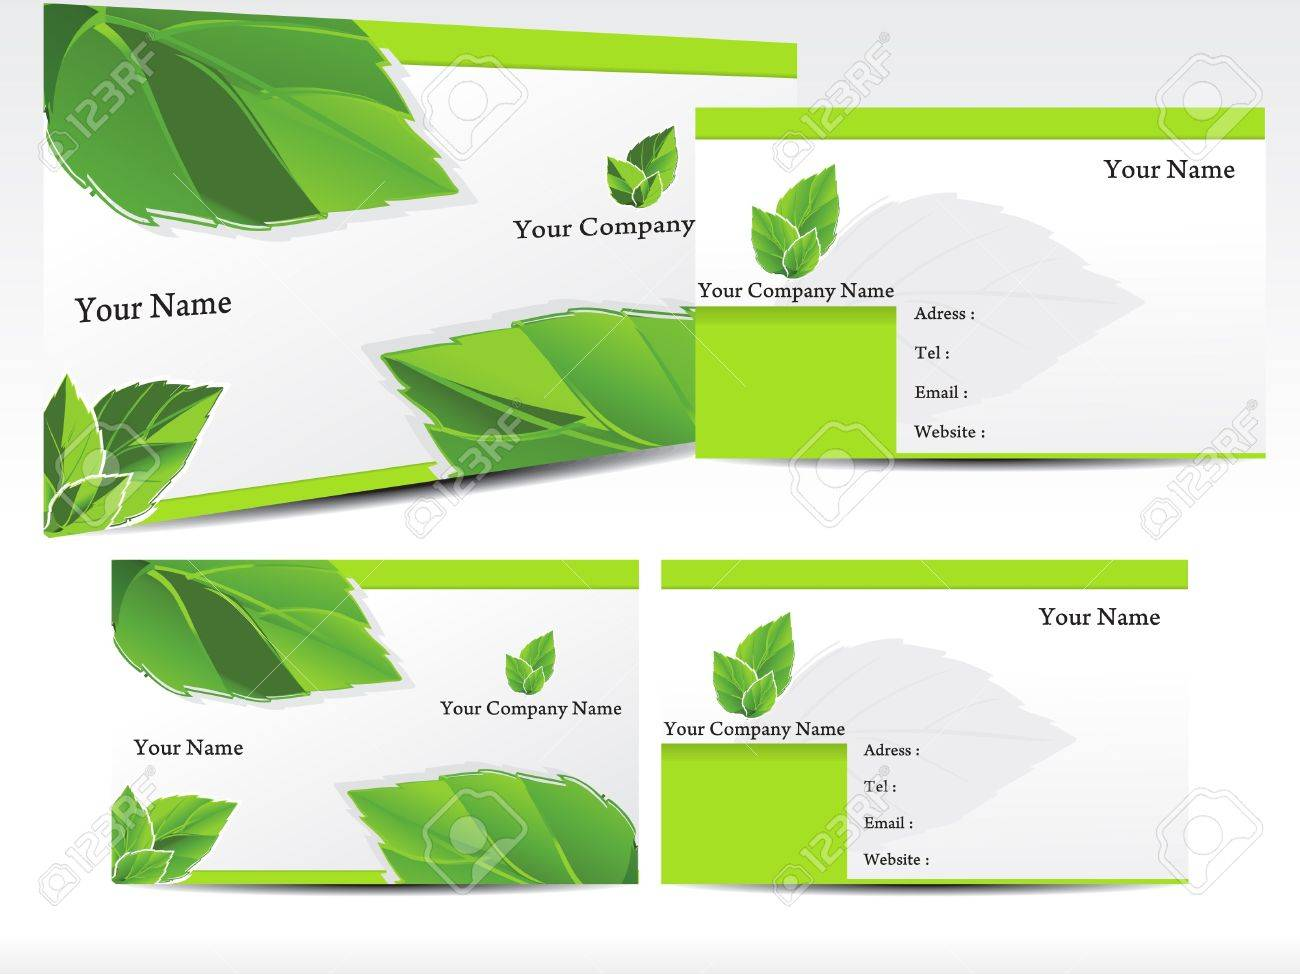 Abstract Green Leaf Business Card Vector Illustration Royalty Free ...